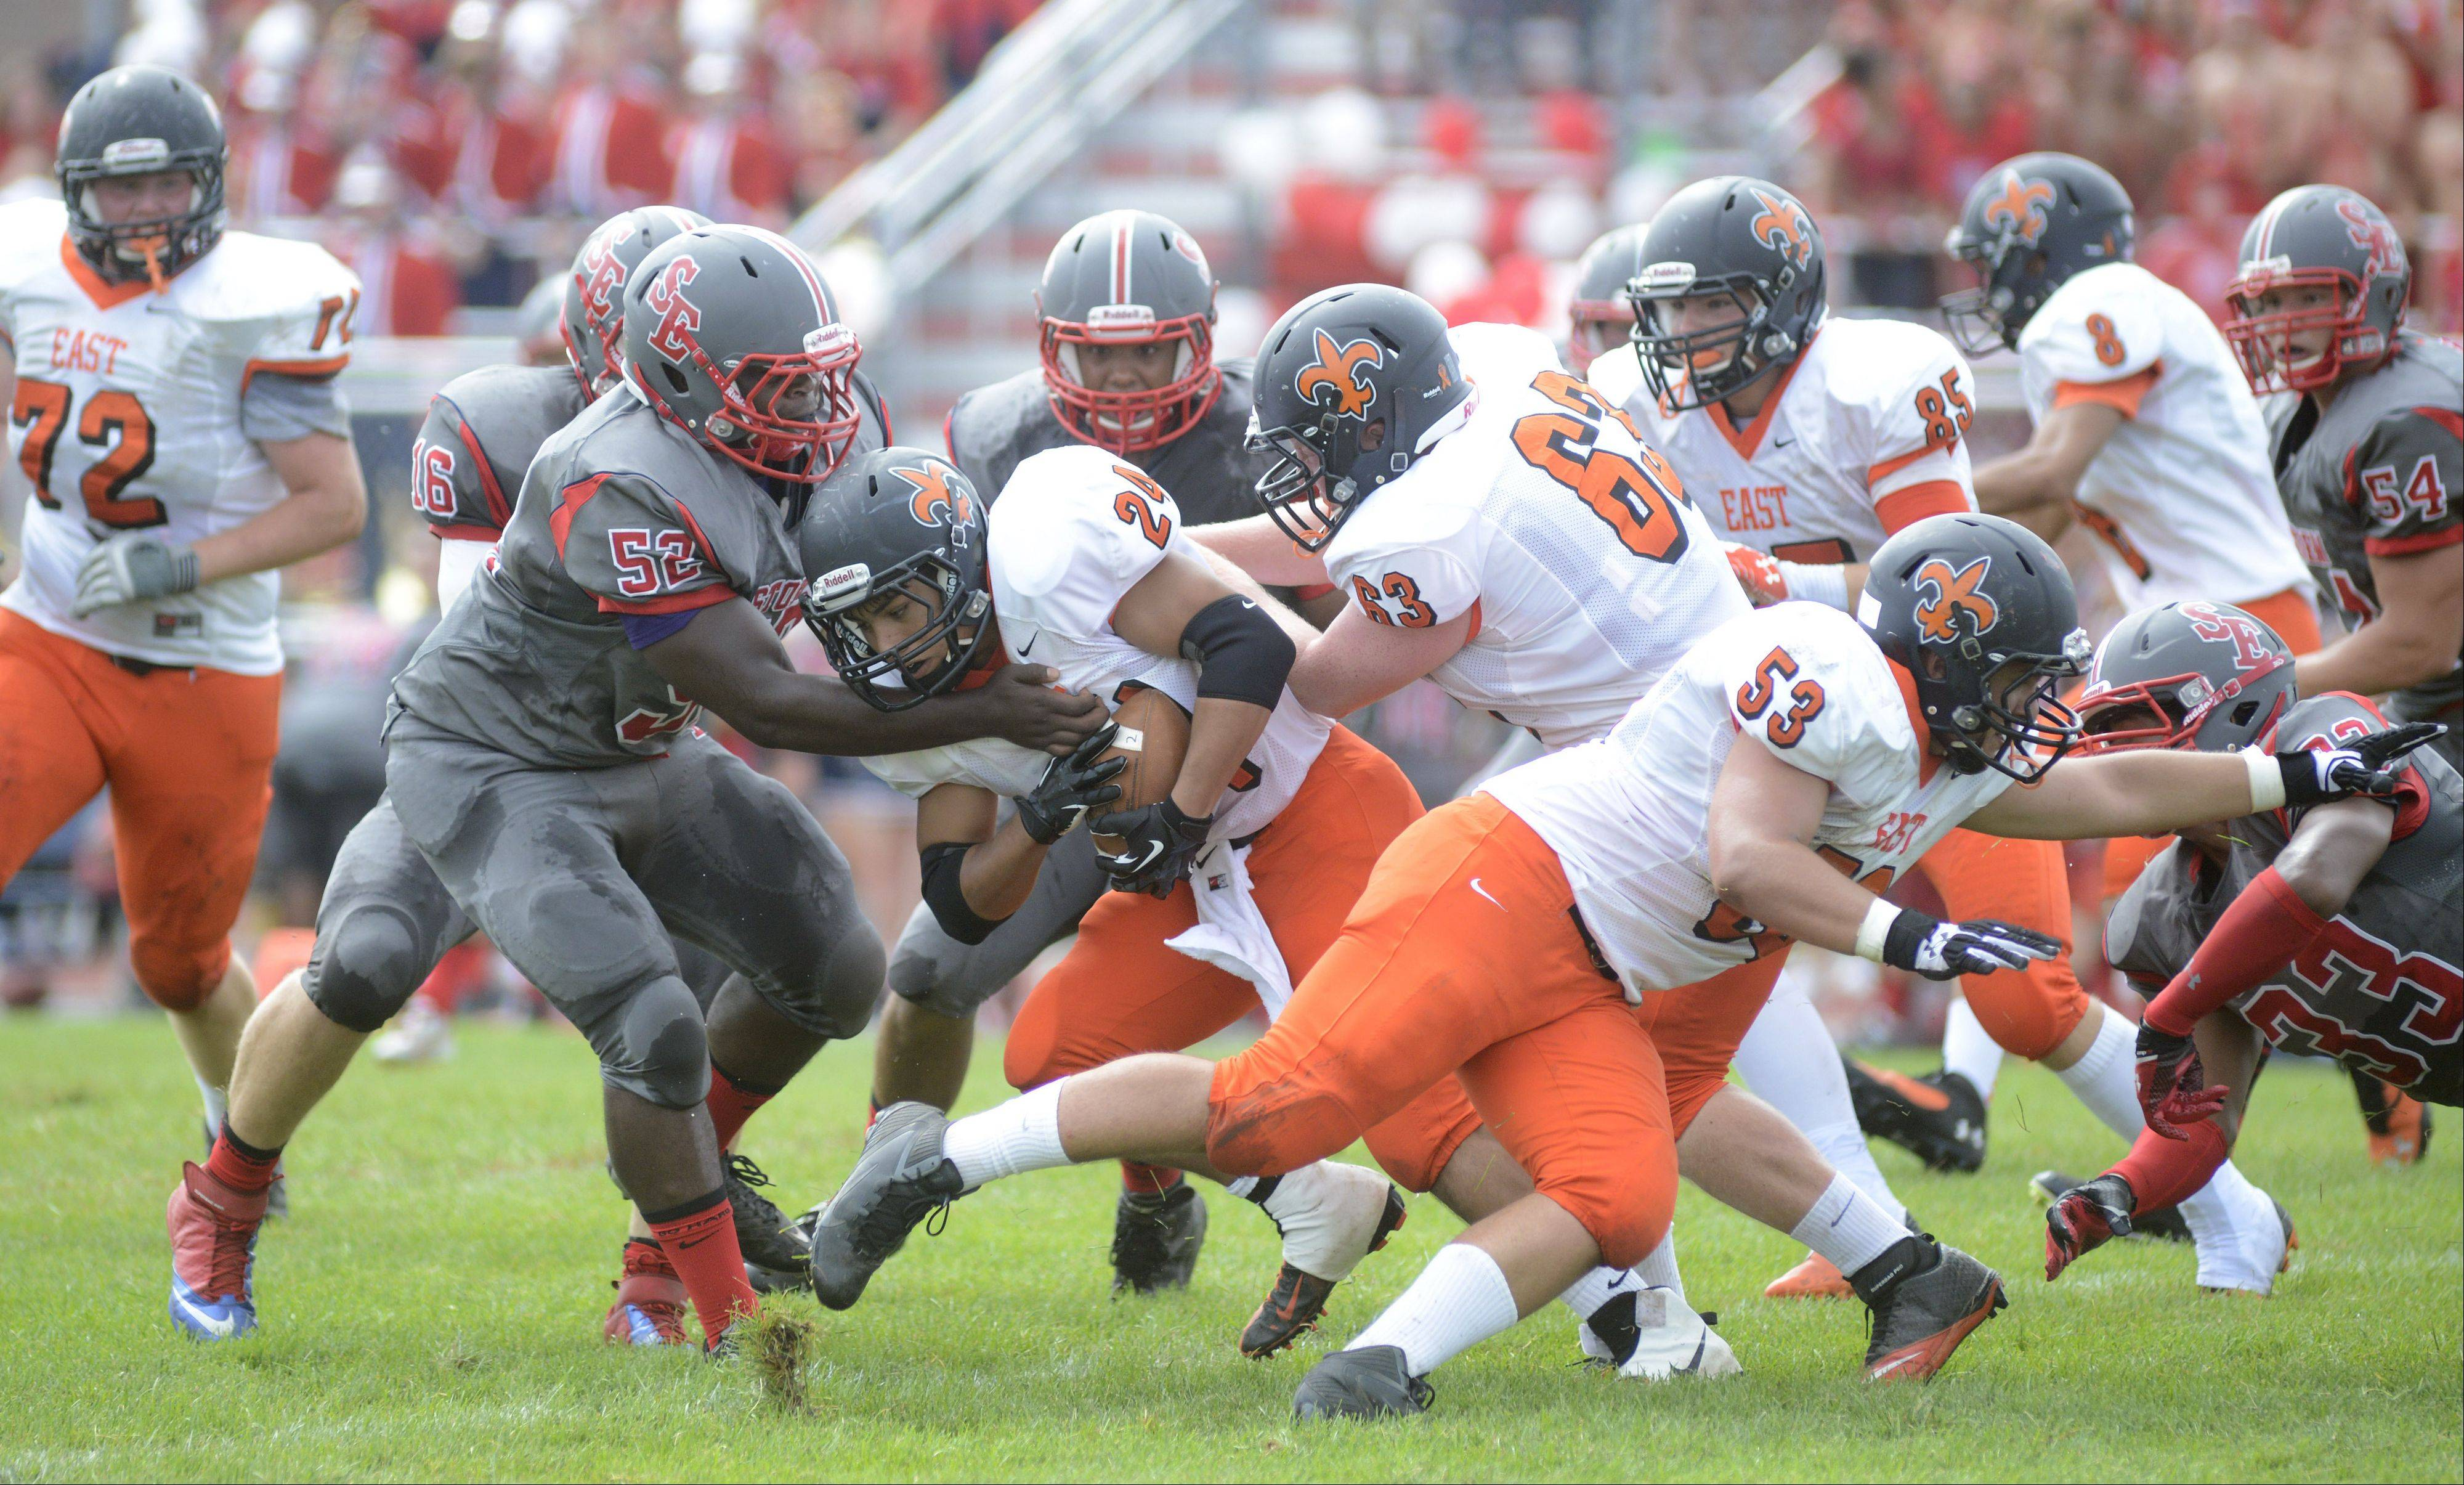 South Elgin's Antchill Thomas stops St. Charles East's Ramon Lopez cold in the second quarter on Saturday, August 31.